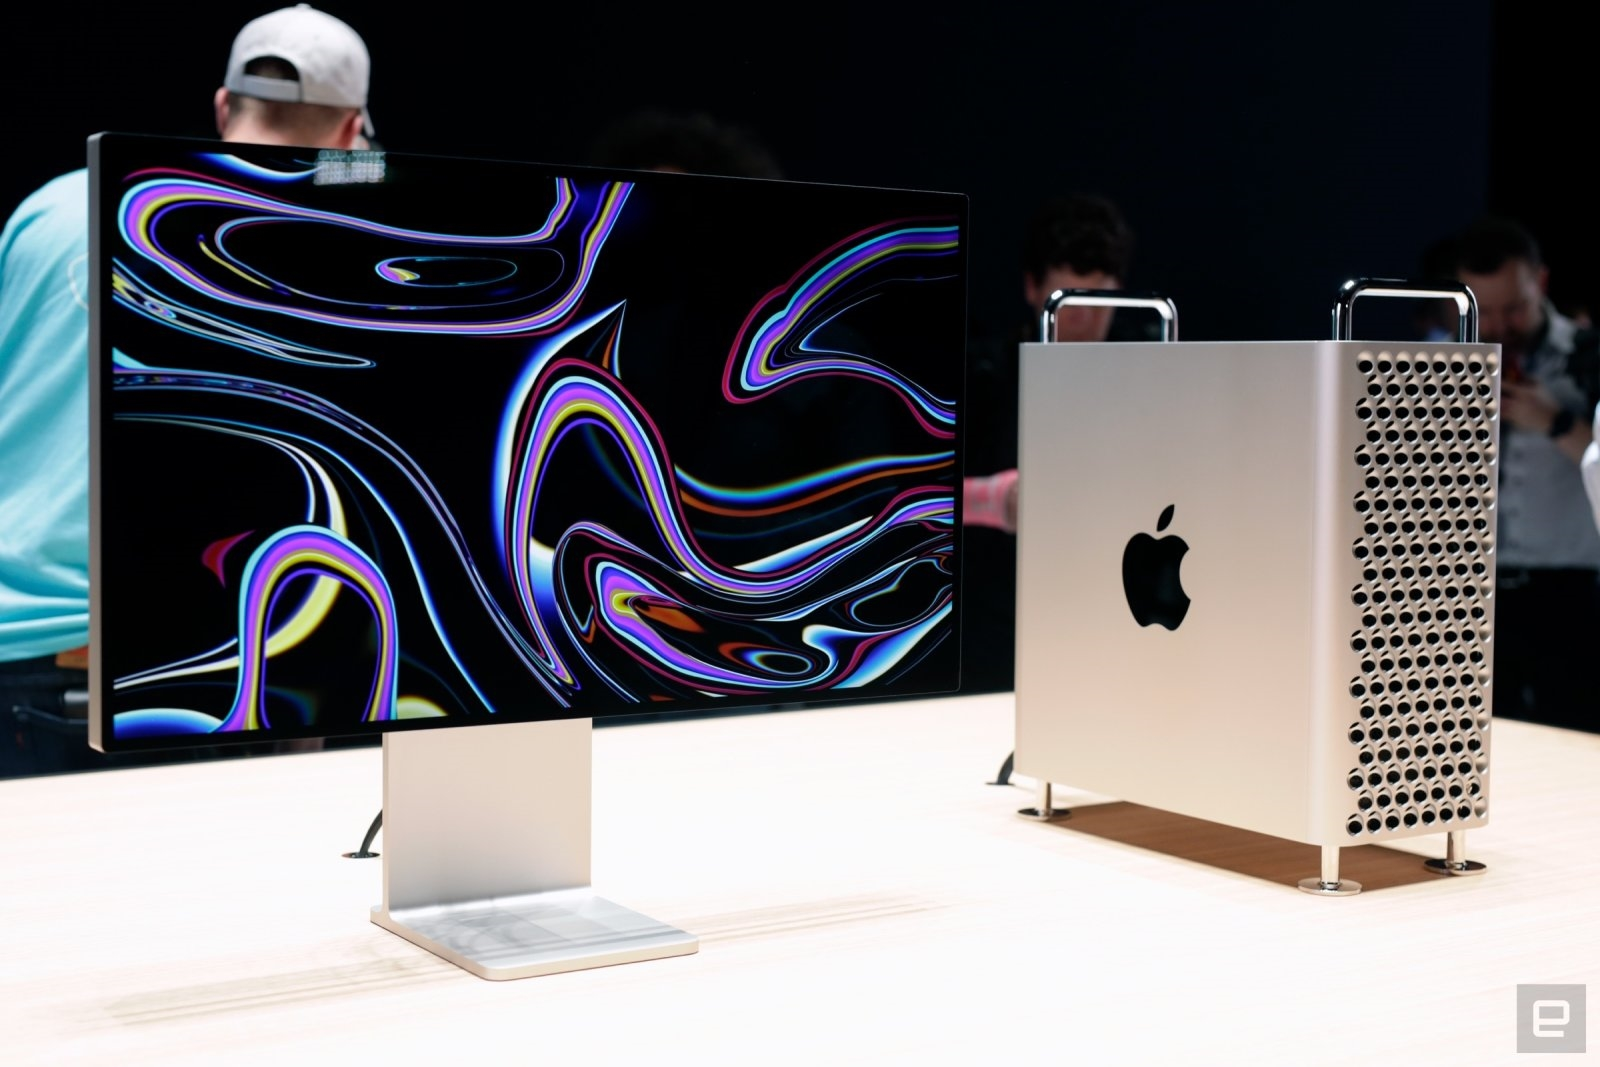 Apple's redesigned Mac Pro will be available to order December 10th | DeviceDaily.com